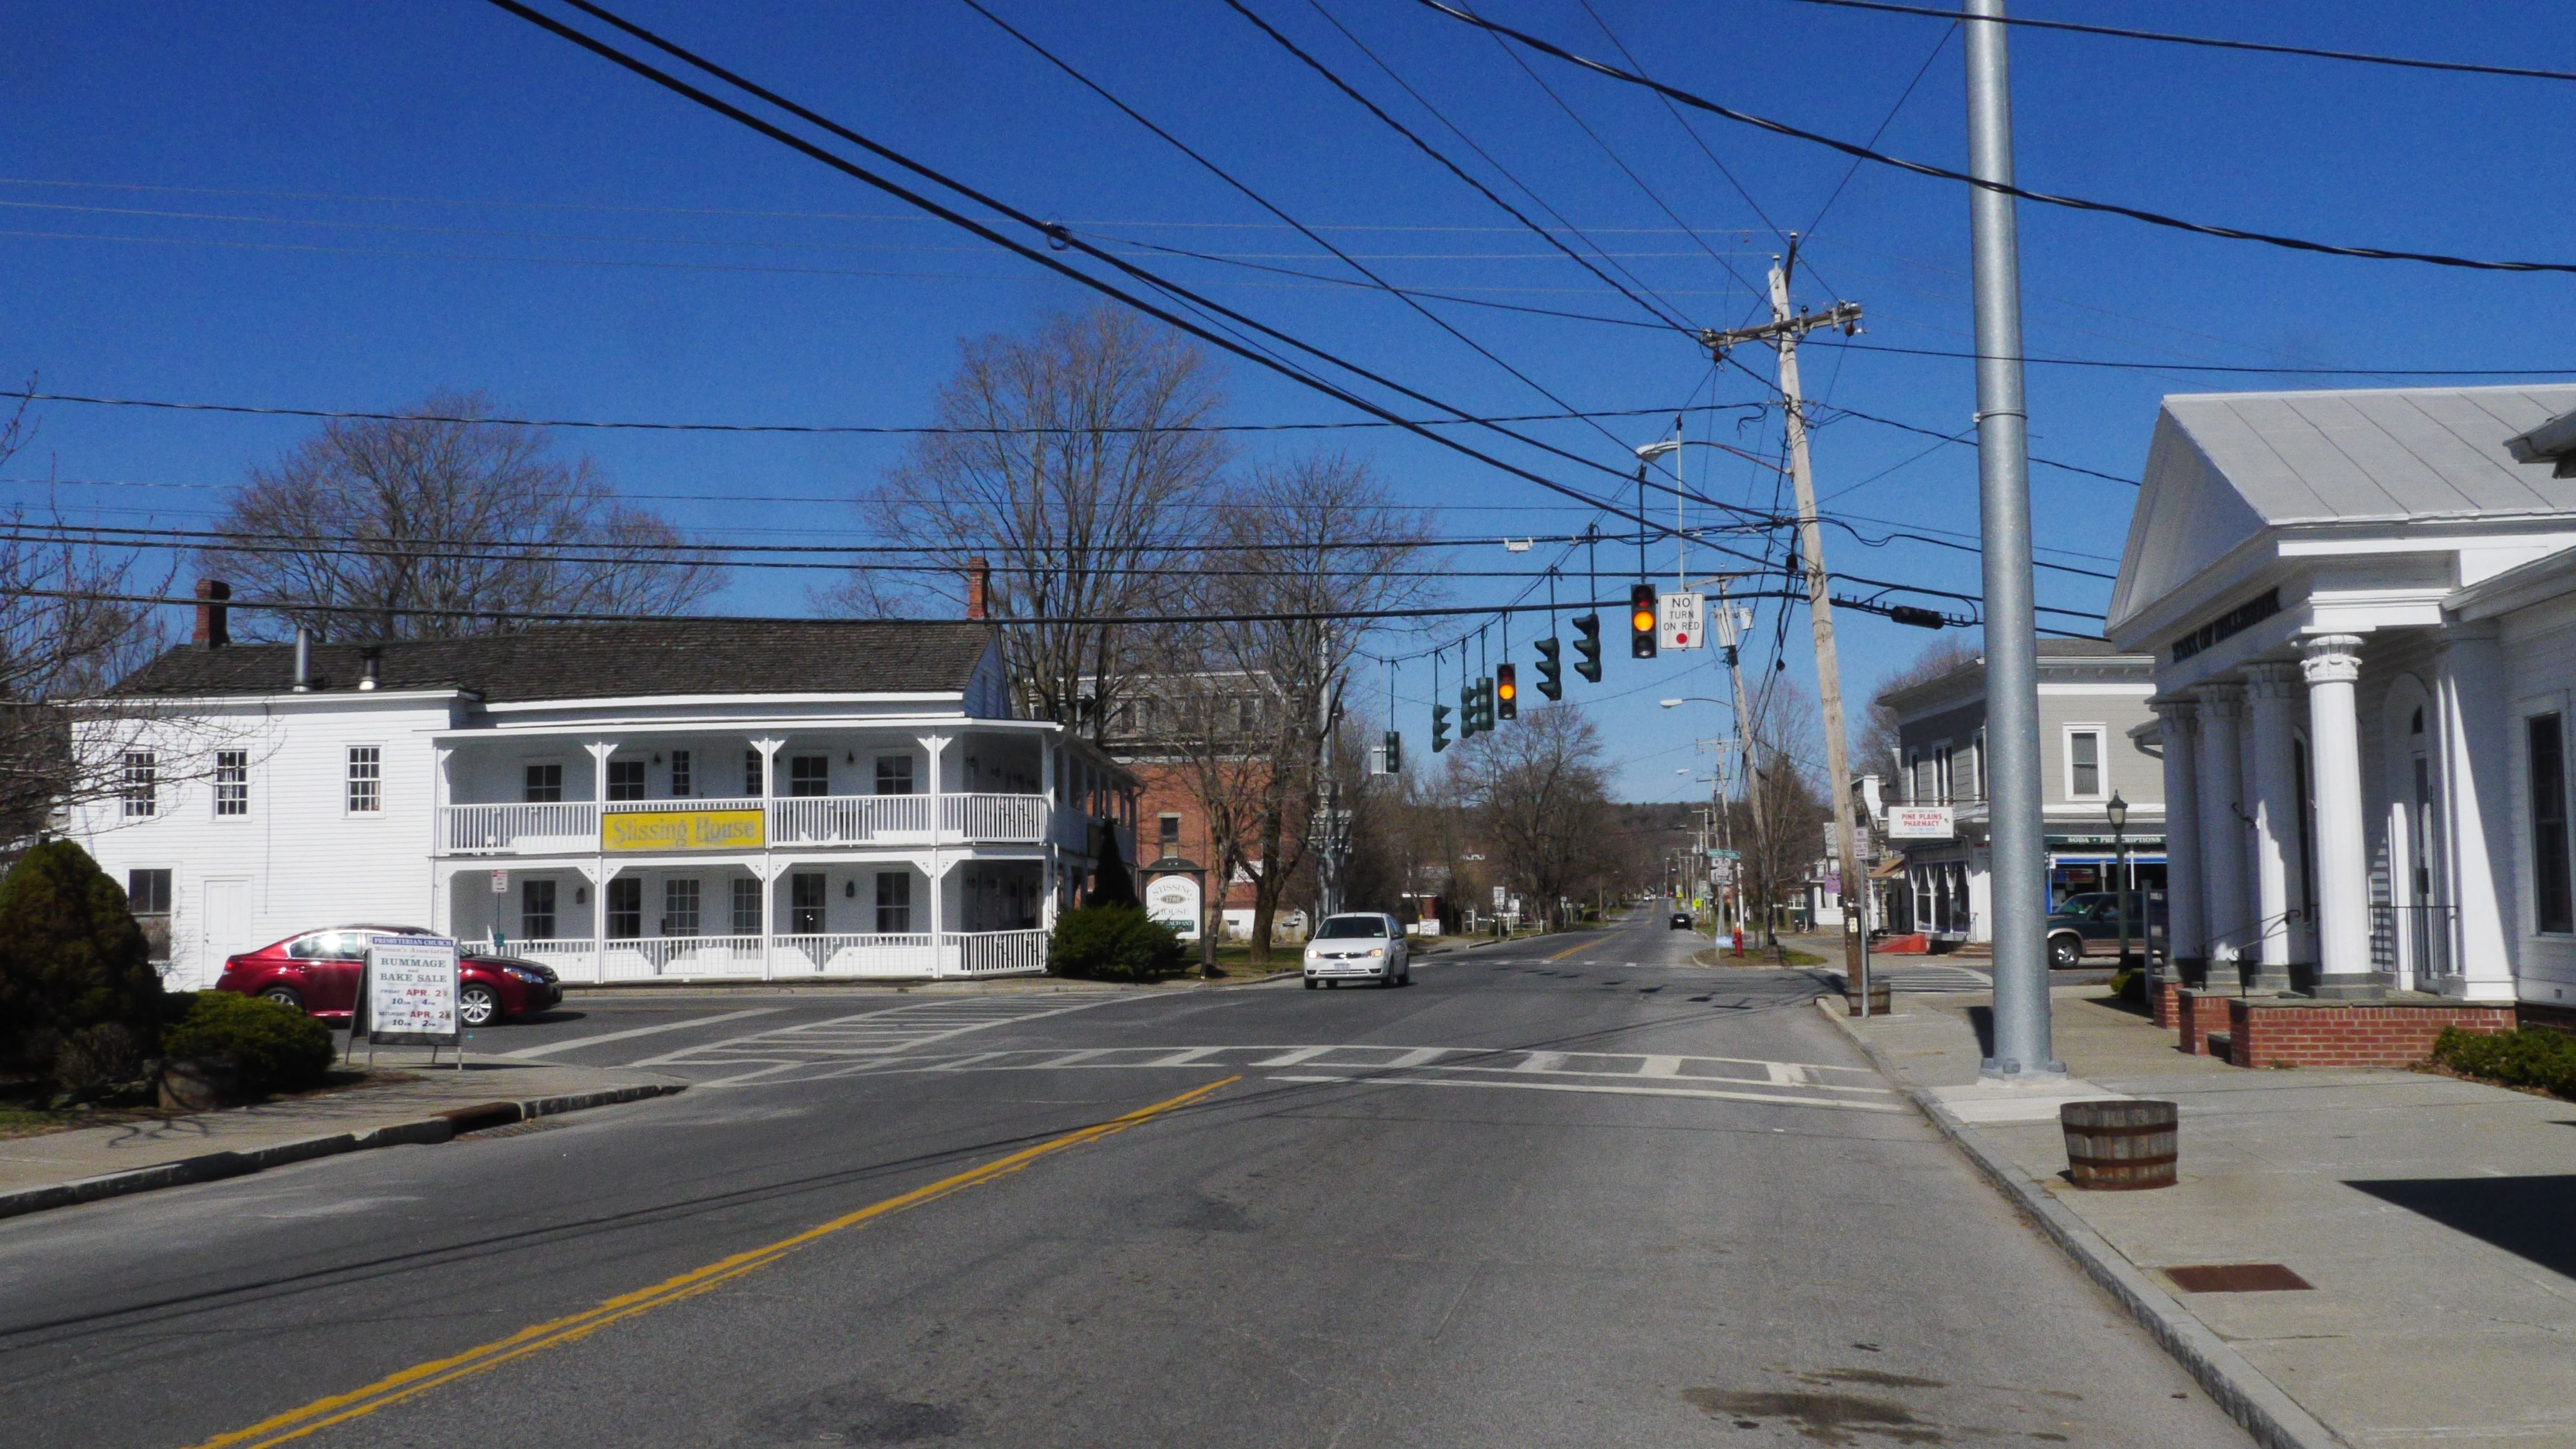 Pine Plains Views Pine Plains Views is a video portrait of Pine Plains, NY, a celebration and exploration of a small town in rural America.